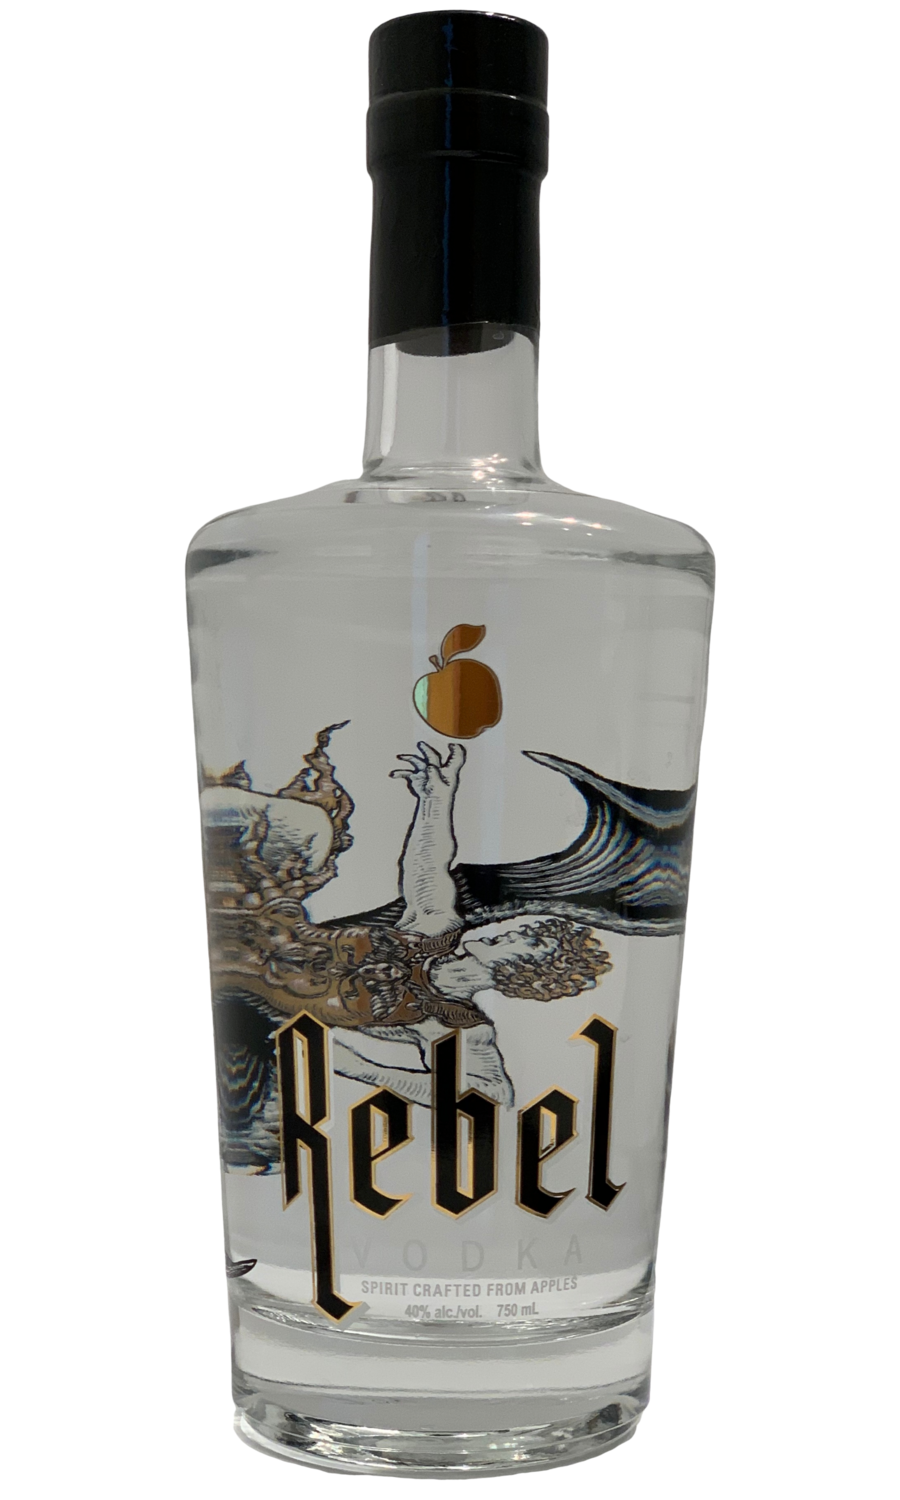 Rebel Vodka (W) Not Available After July 31 2020